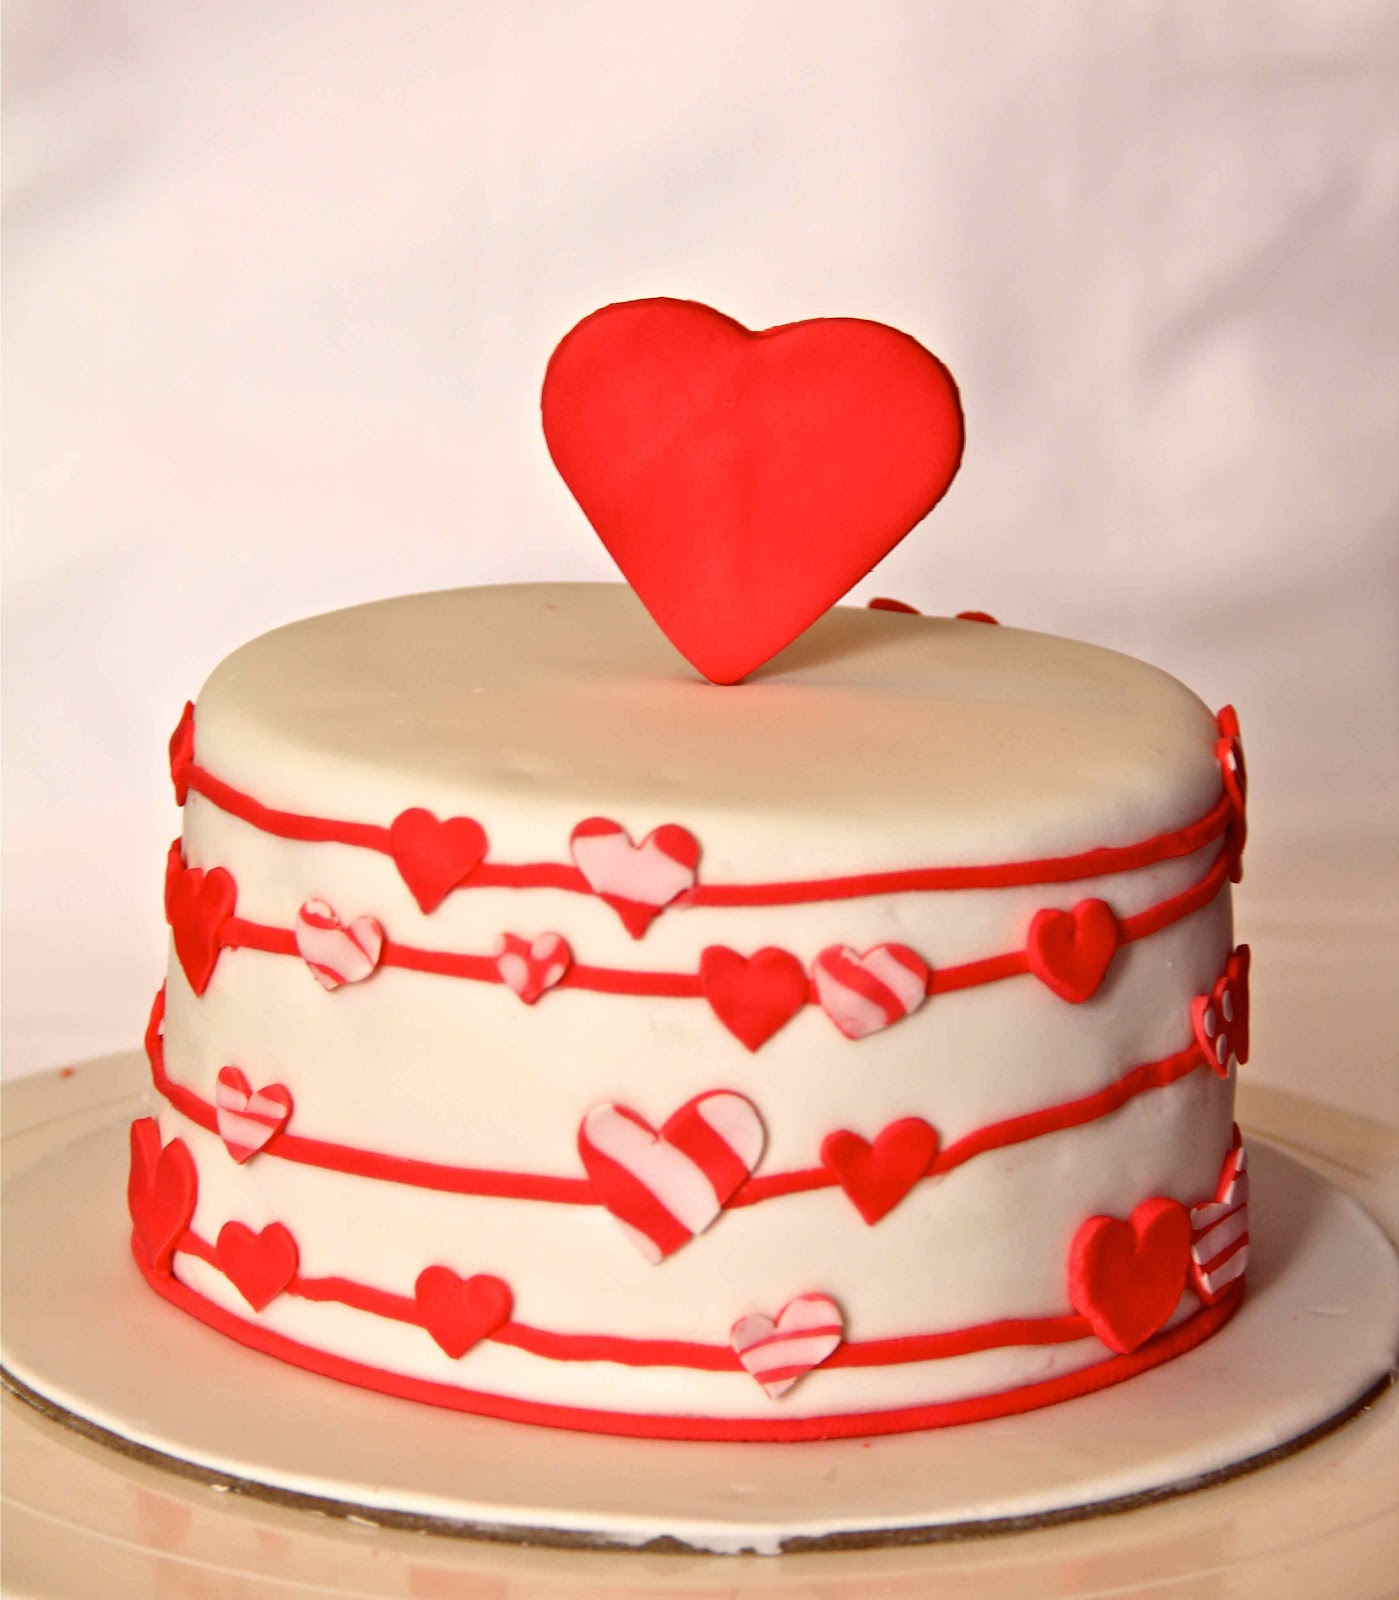 Valentine S Day Cake Images : Bakerz Dad: Love is in the air - Valentine s Day Cake